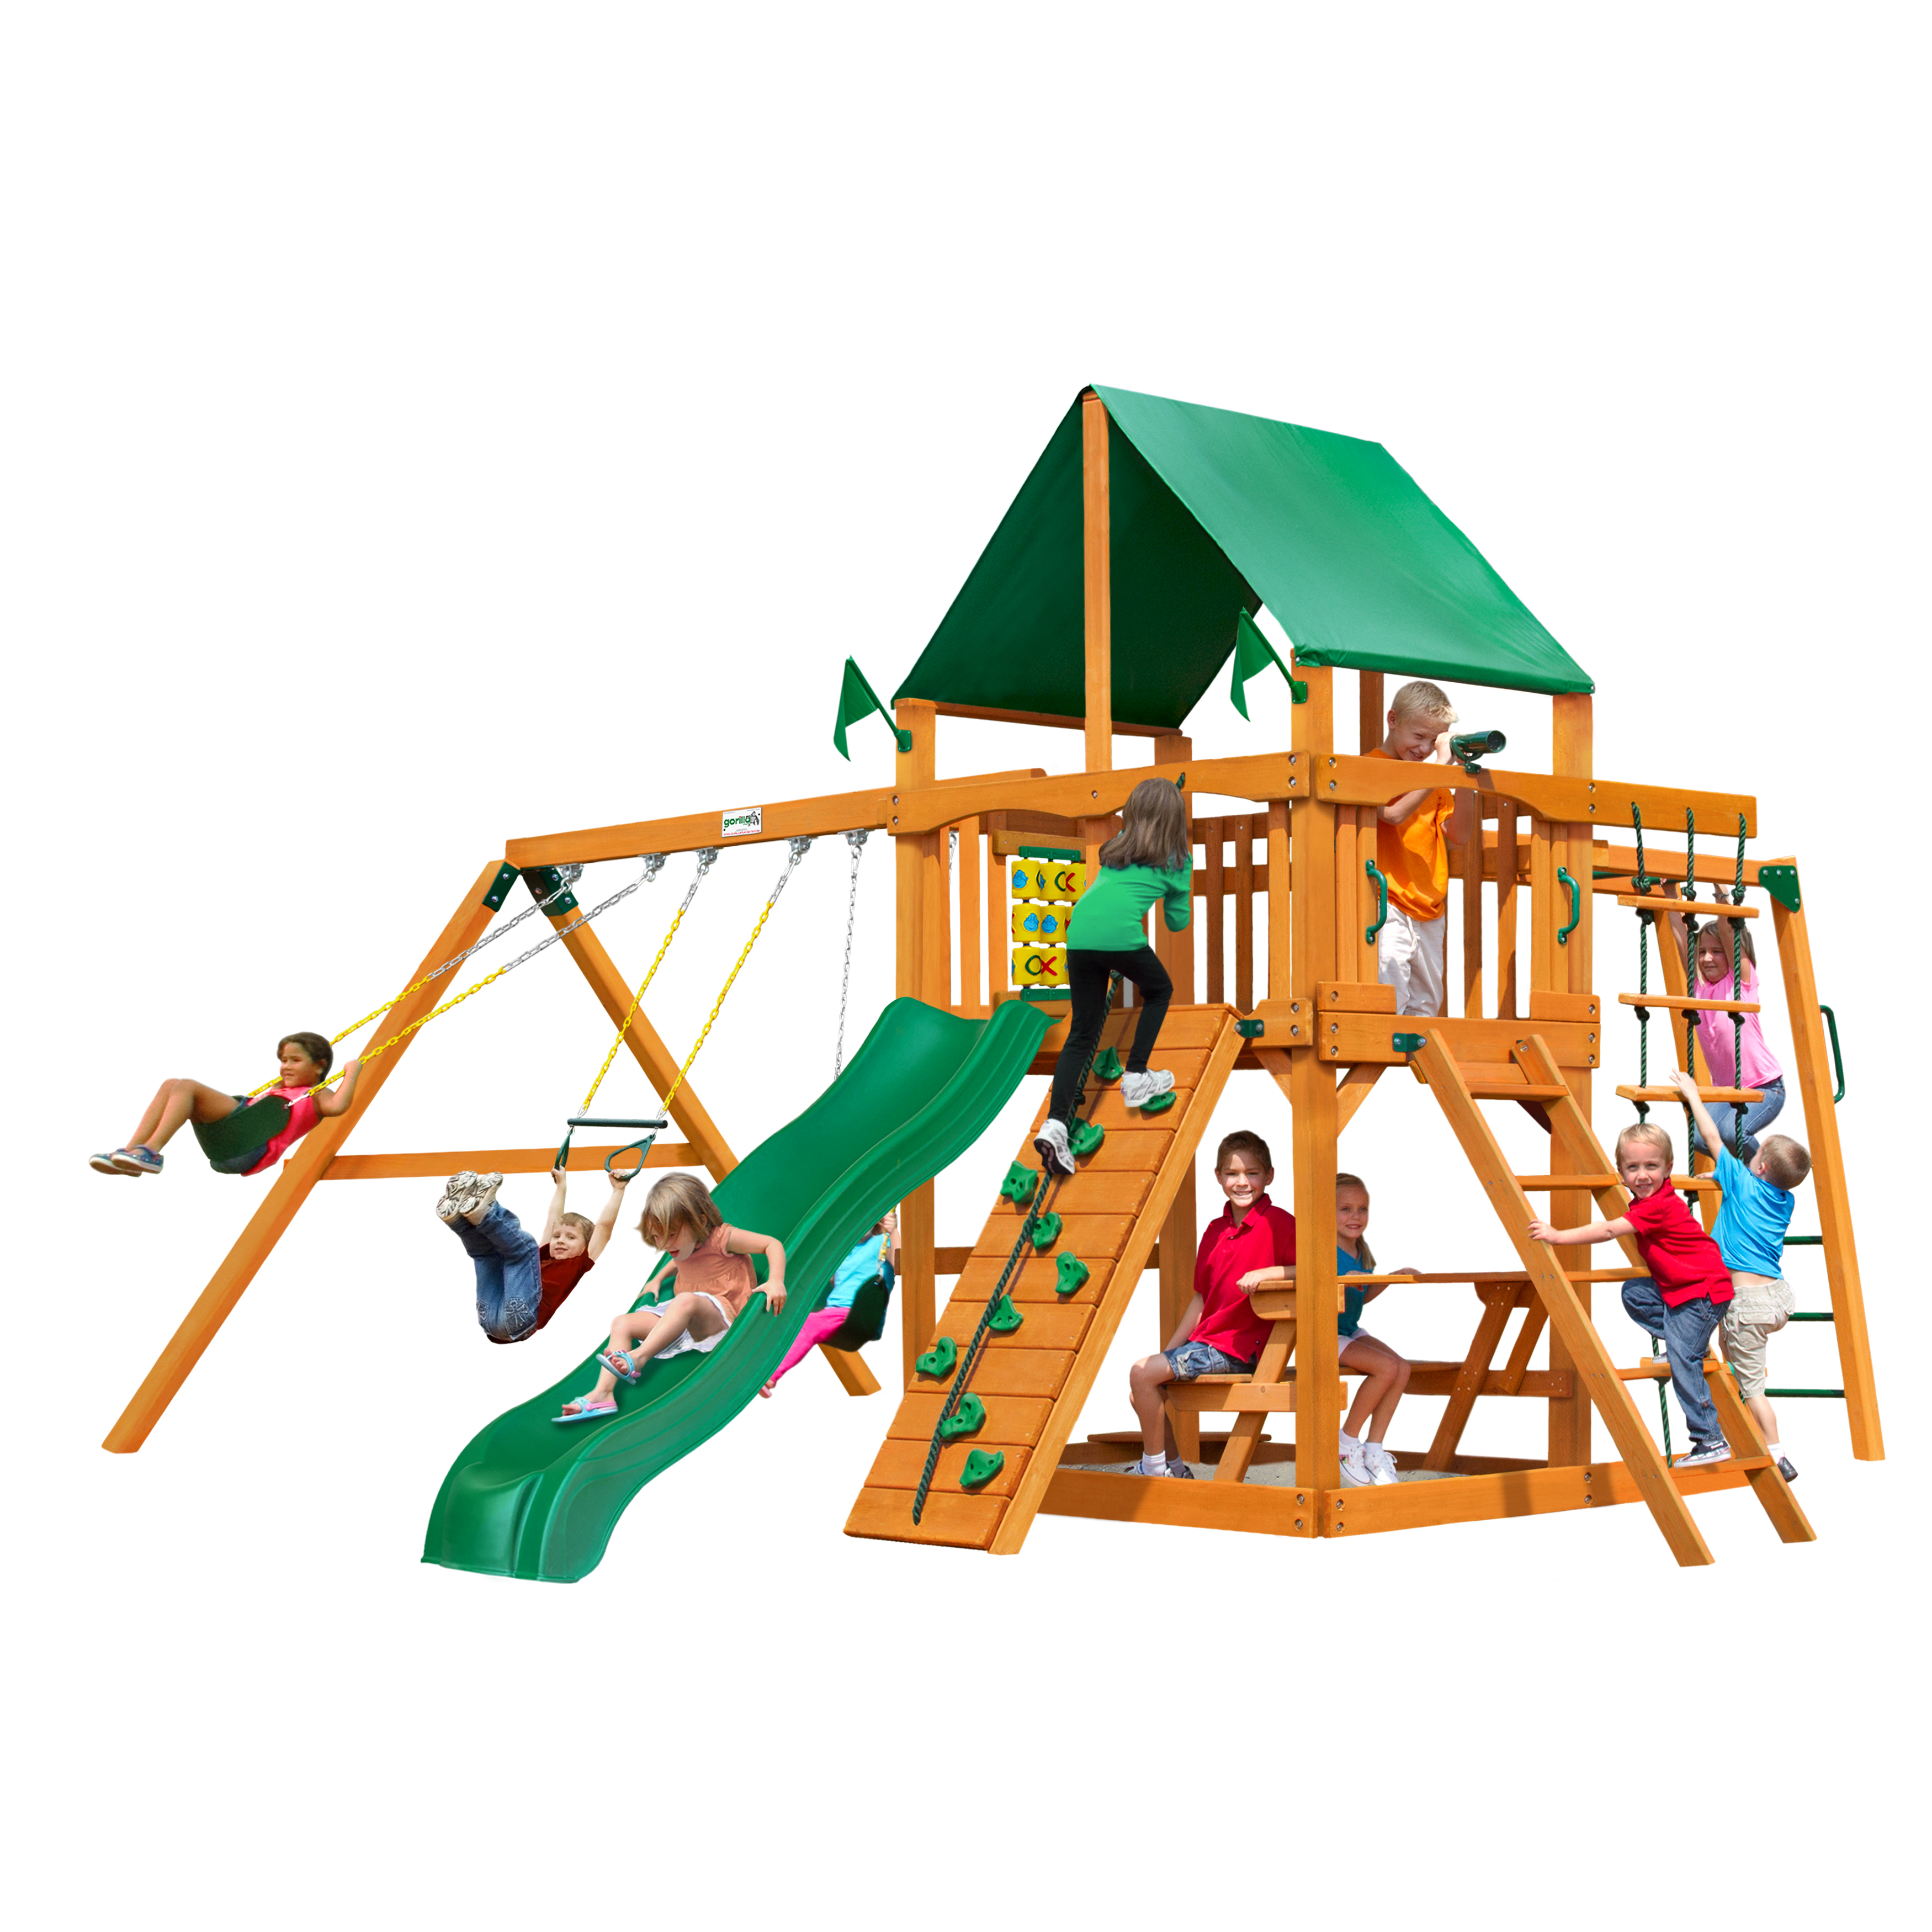 Gorilla Playsets Navigator Swing Set with Natural Cedar Posts and Deluxe Green Vinyl Canopy